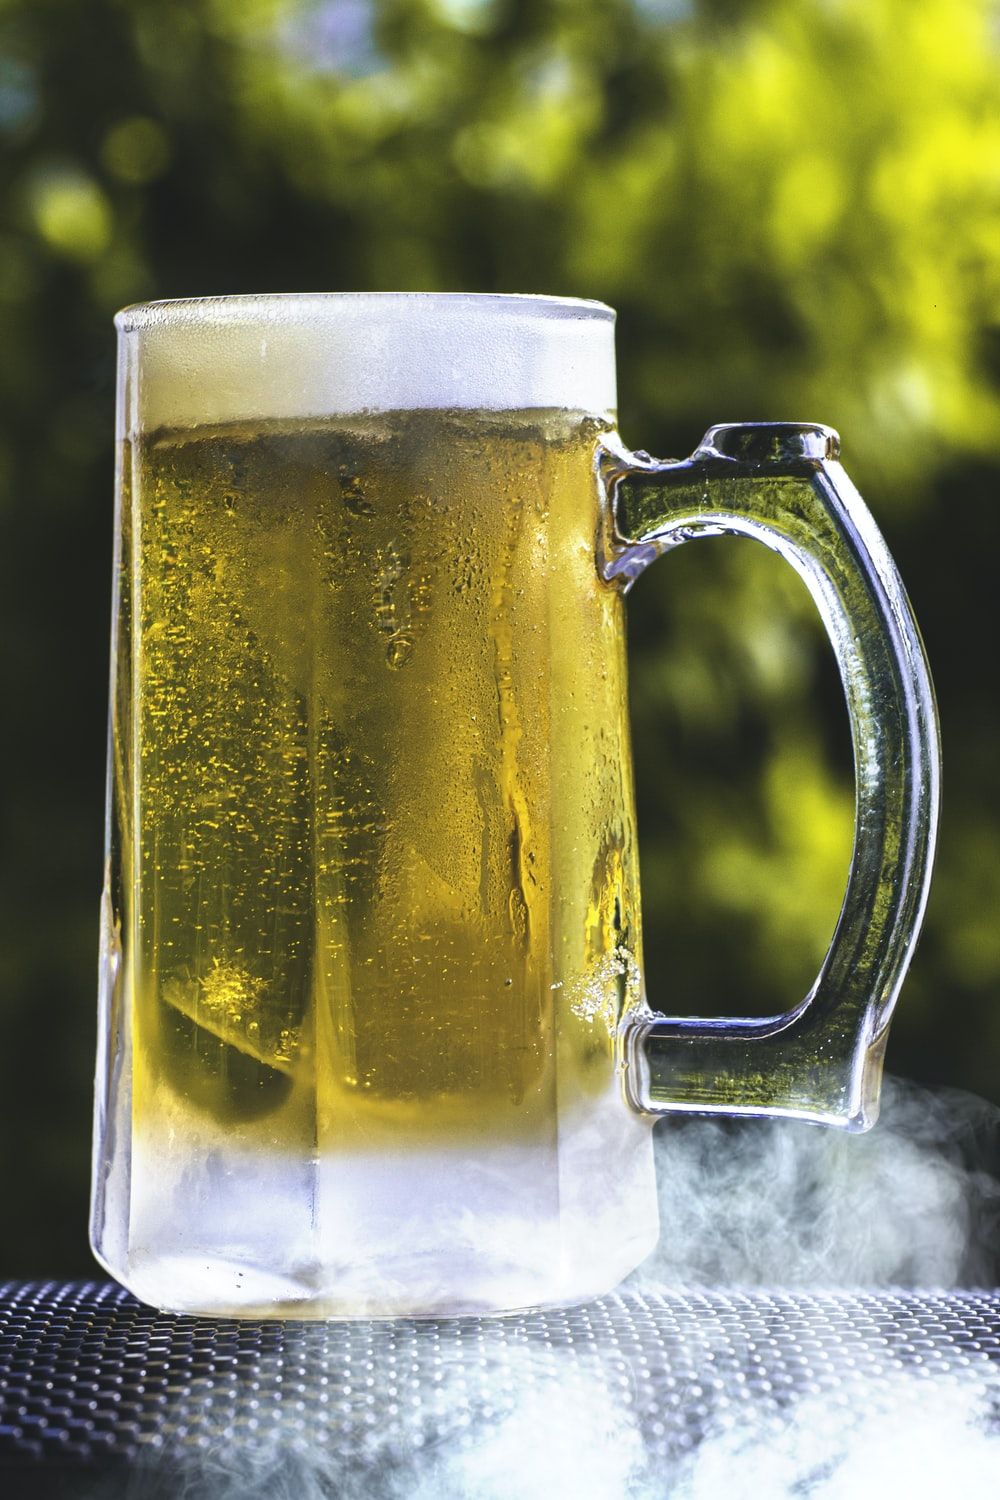 clear glass beer mug with beer